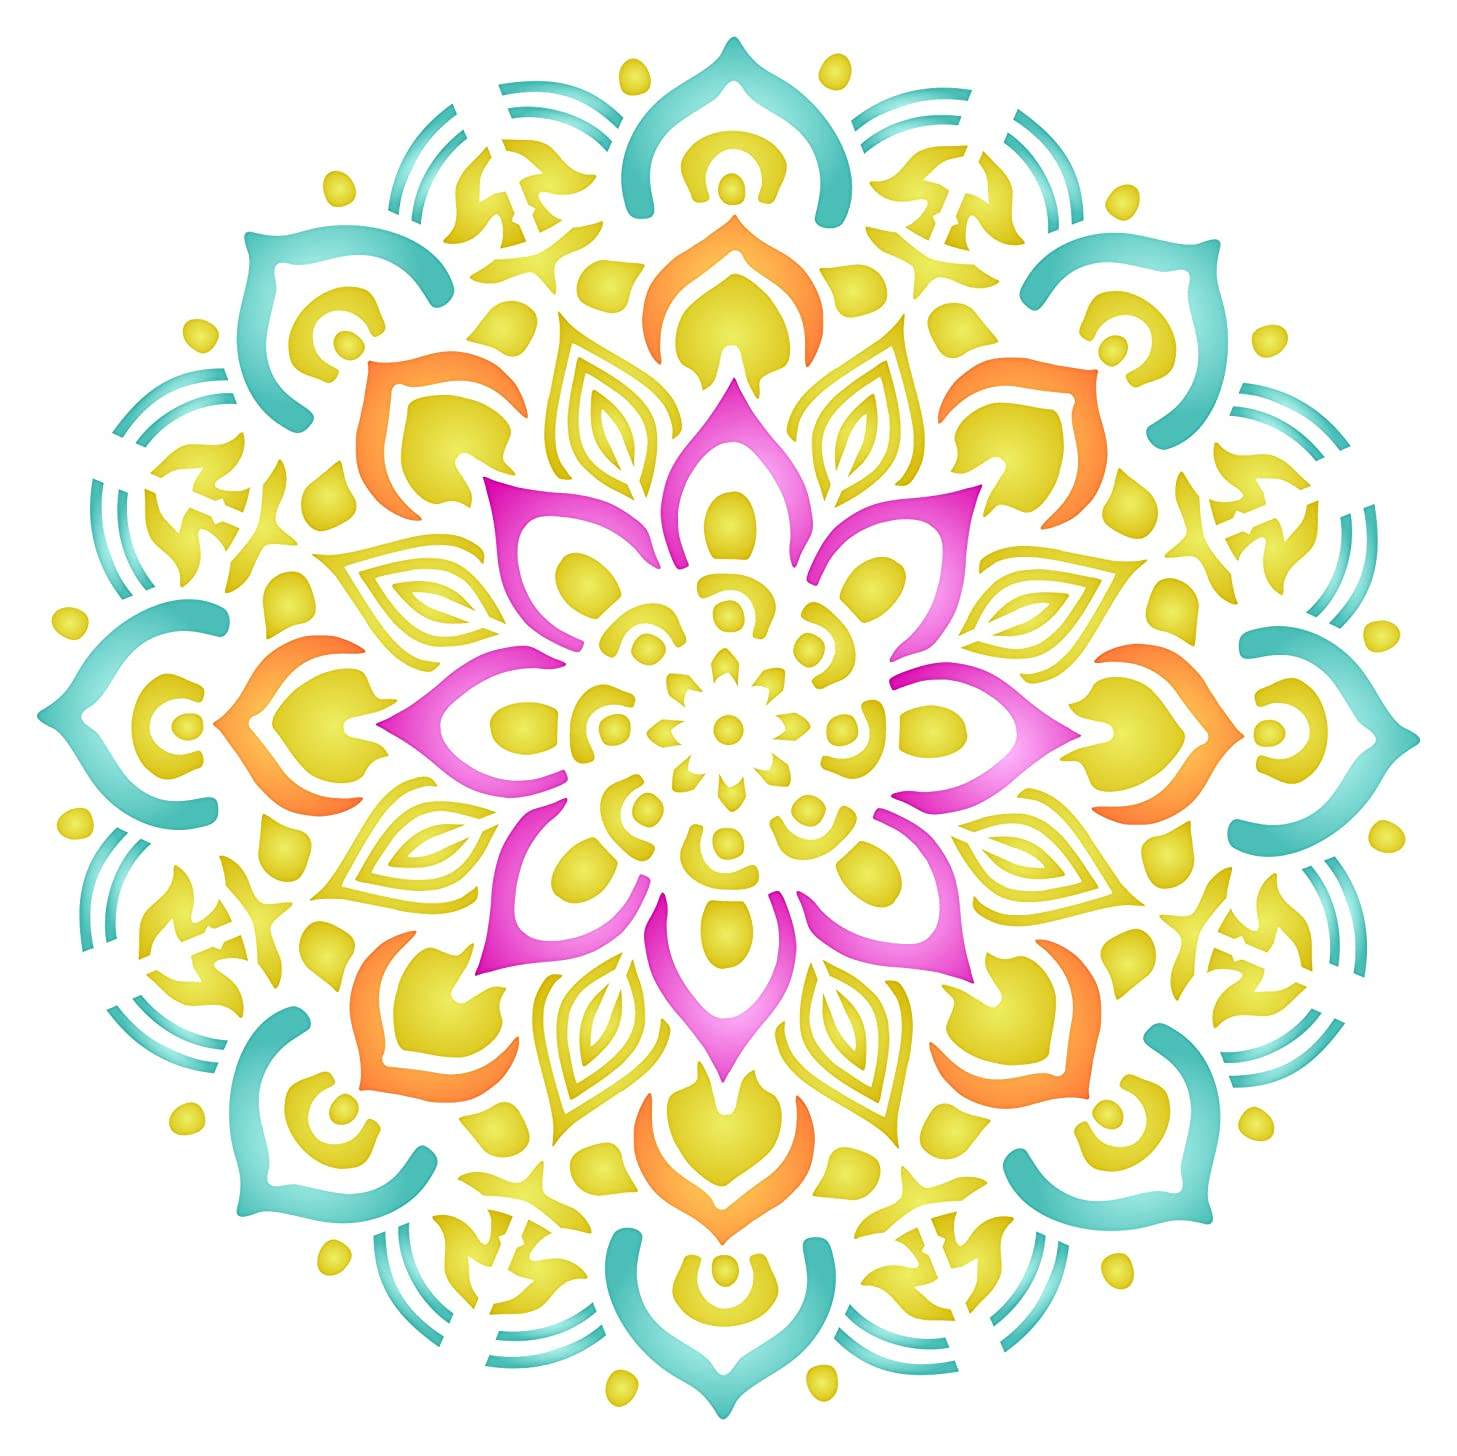 Healing Mandala Stencil - 10 x 10 inch (M) - Reusable AUM Indian Buddhist Spiritual Stencils for Painting - Use on Paper Projects Walls Floors Fabric Furniture Glass Wood etc.